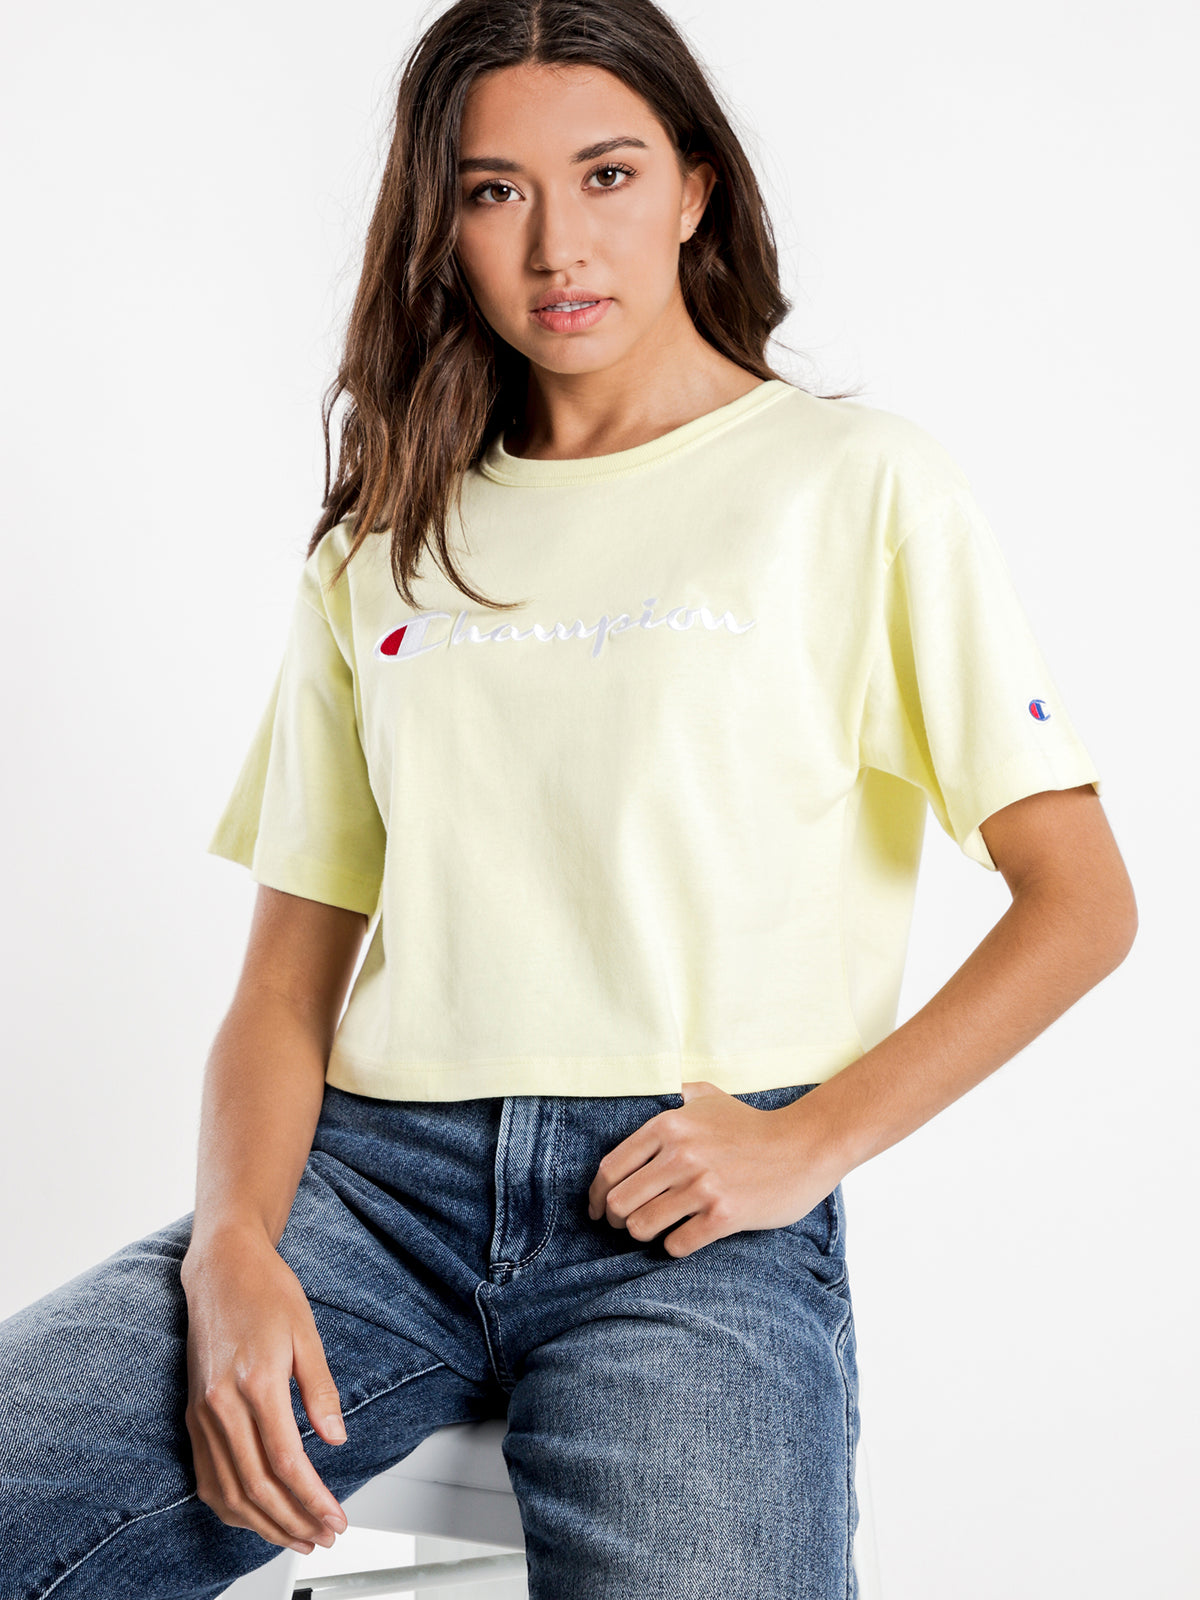 Cropped Script T-Shirt in Origami Yellow